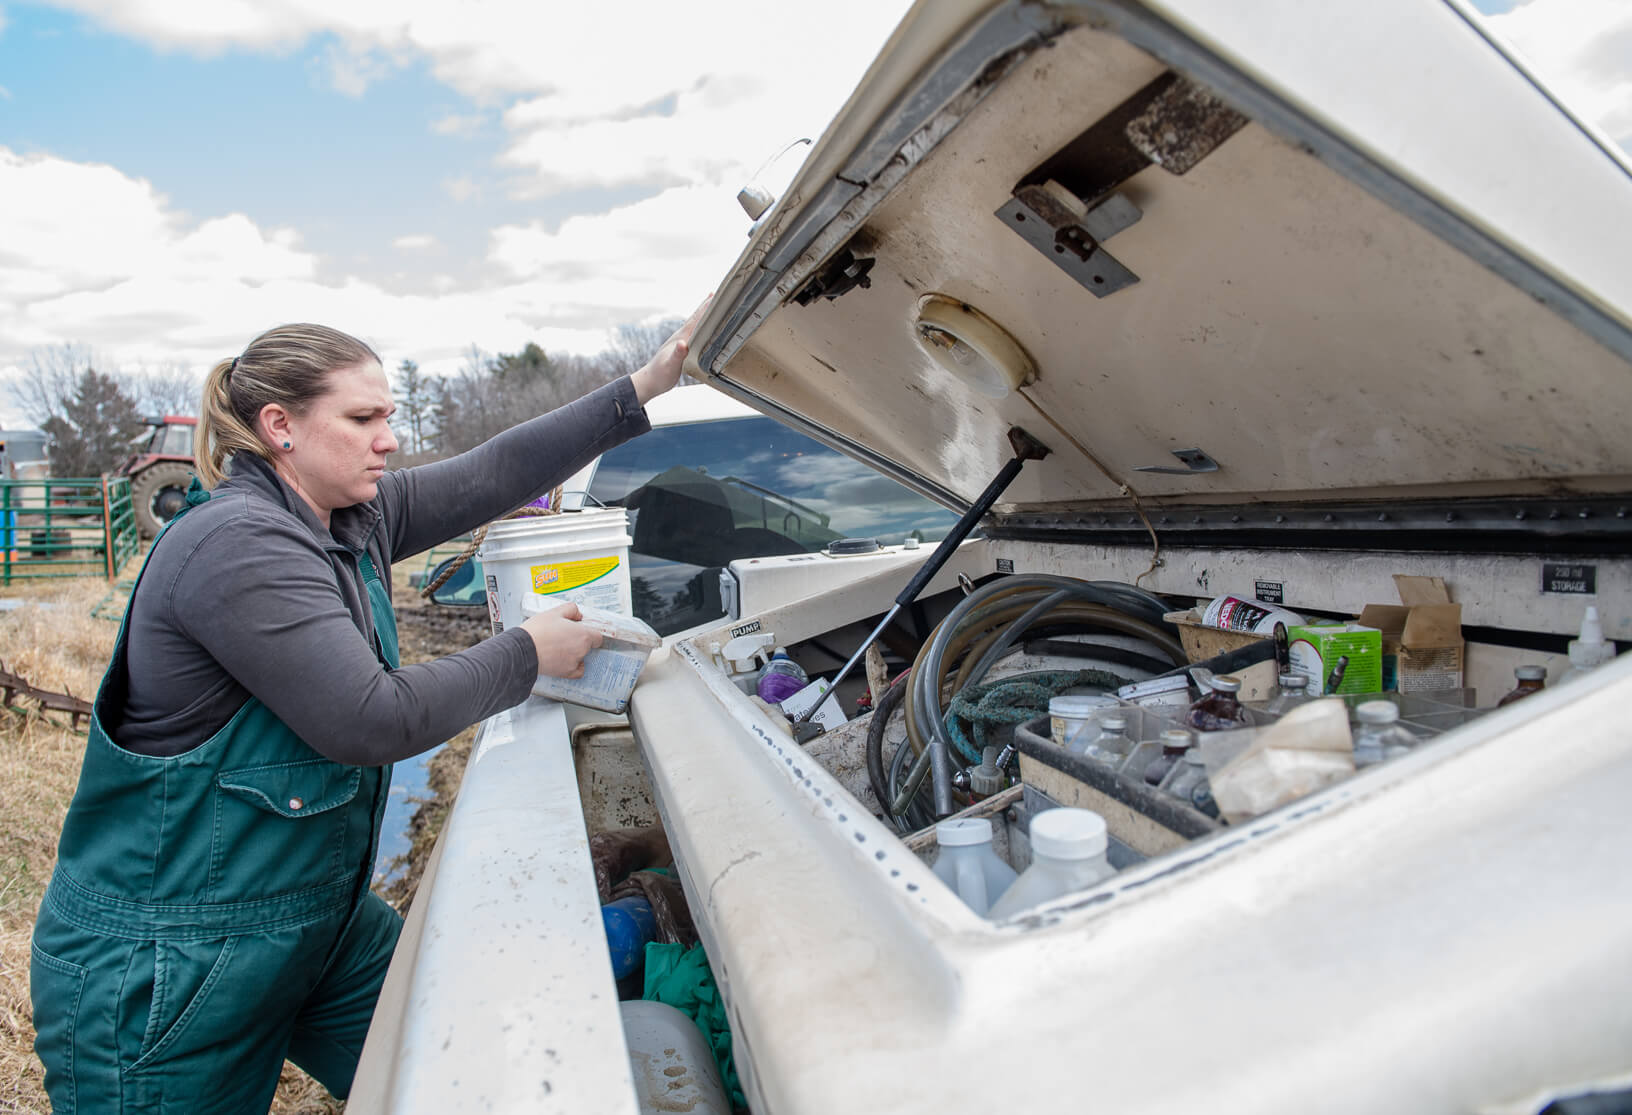 Katie Lang prepares to make a visit at a farm. Her truck is a mobile medical office that holds all the tools and medicines needed to help animals.